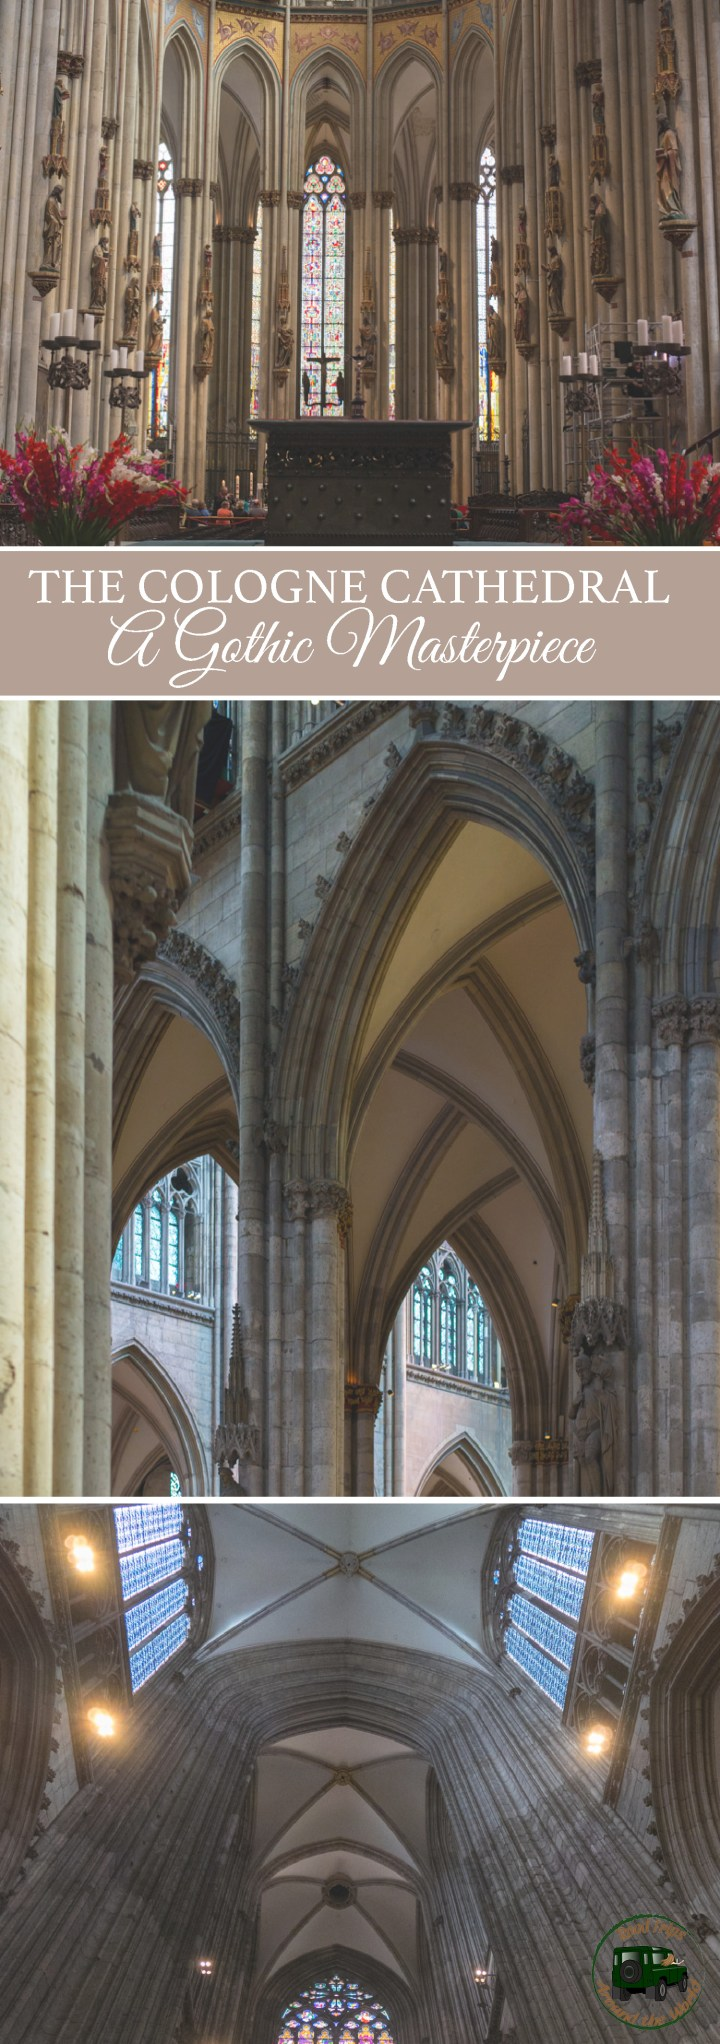 The Cologne Cathedral in Germany, a Gothic Masterpiece - Check it out on roadtripsaroundtheworld.com